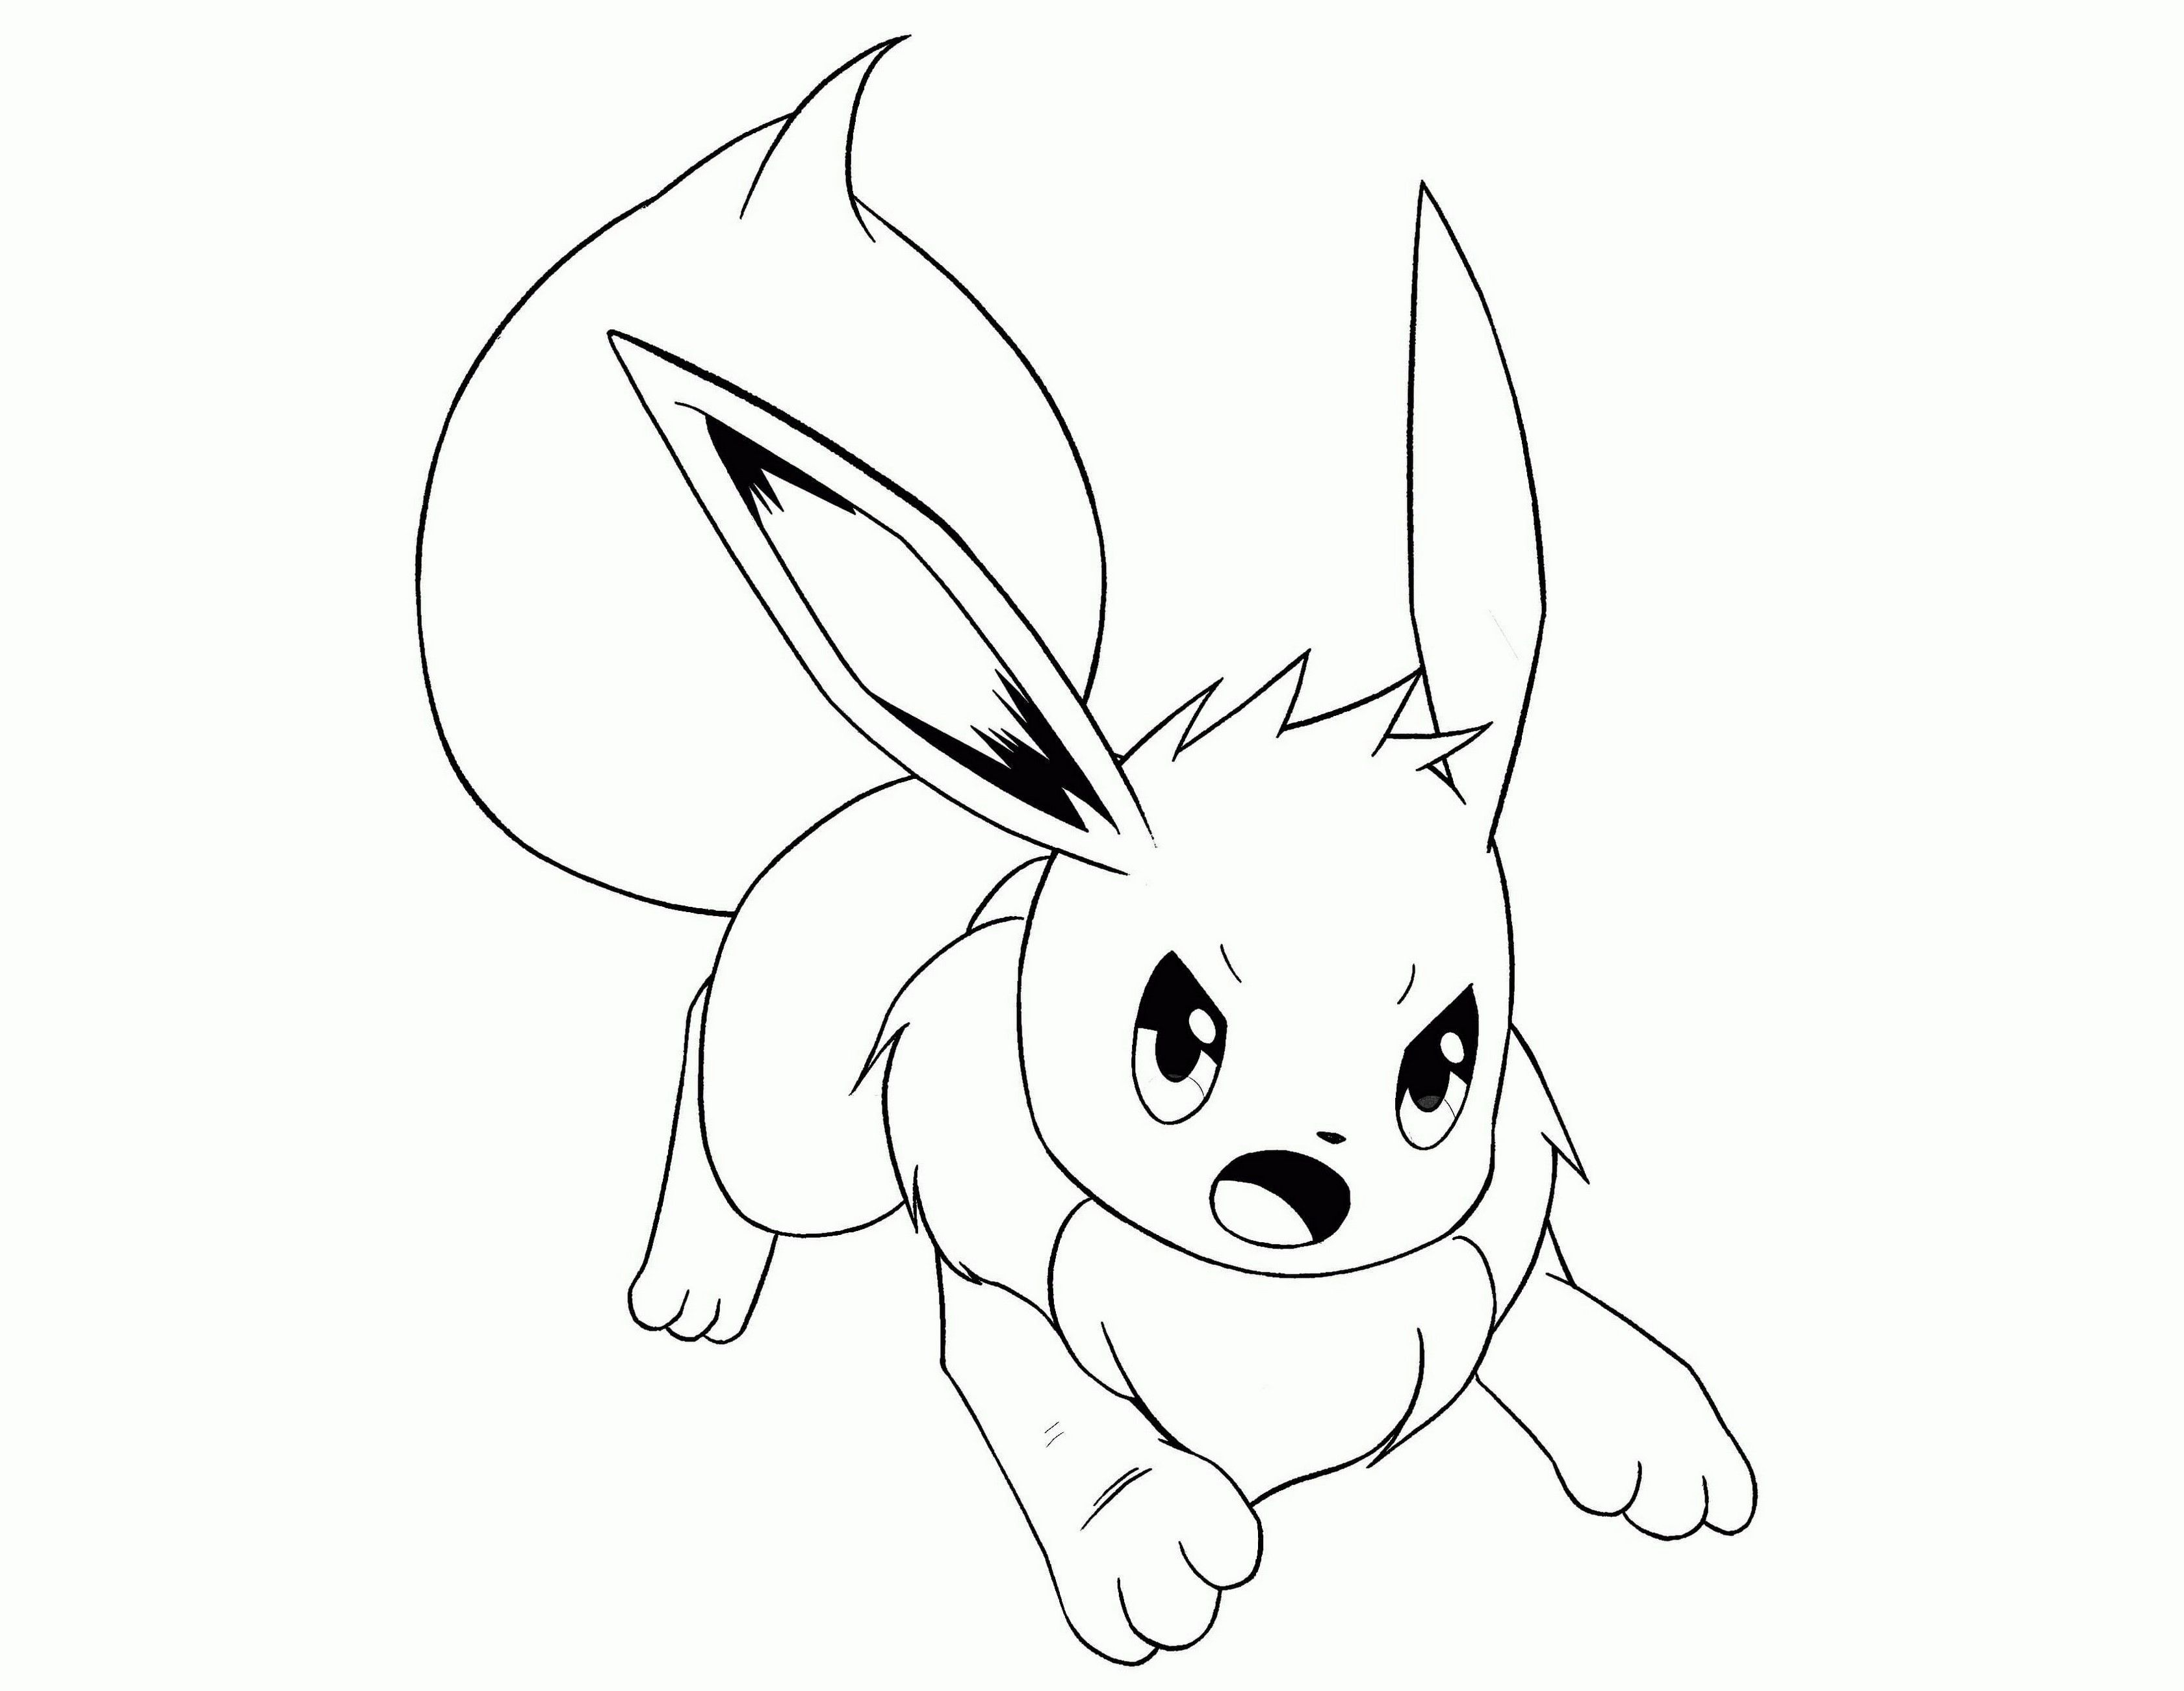 Eevee Coloring Pages Printable Pokemon coloring, Pokemon